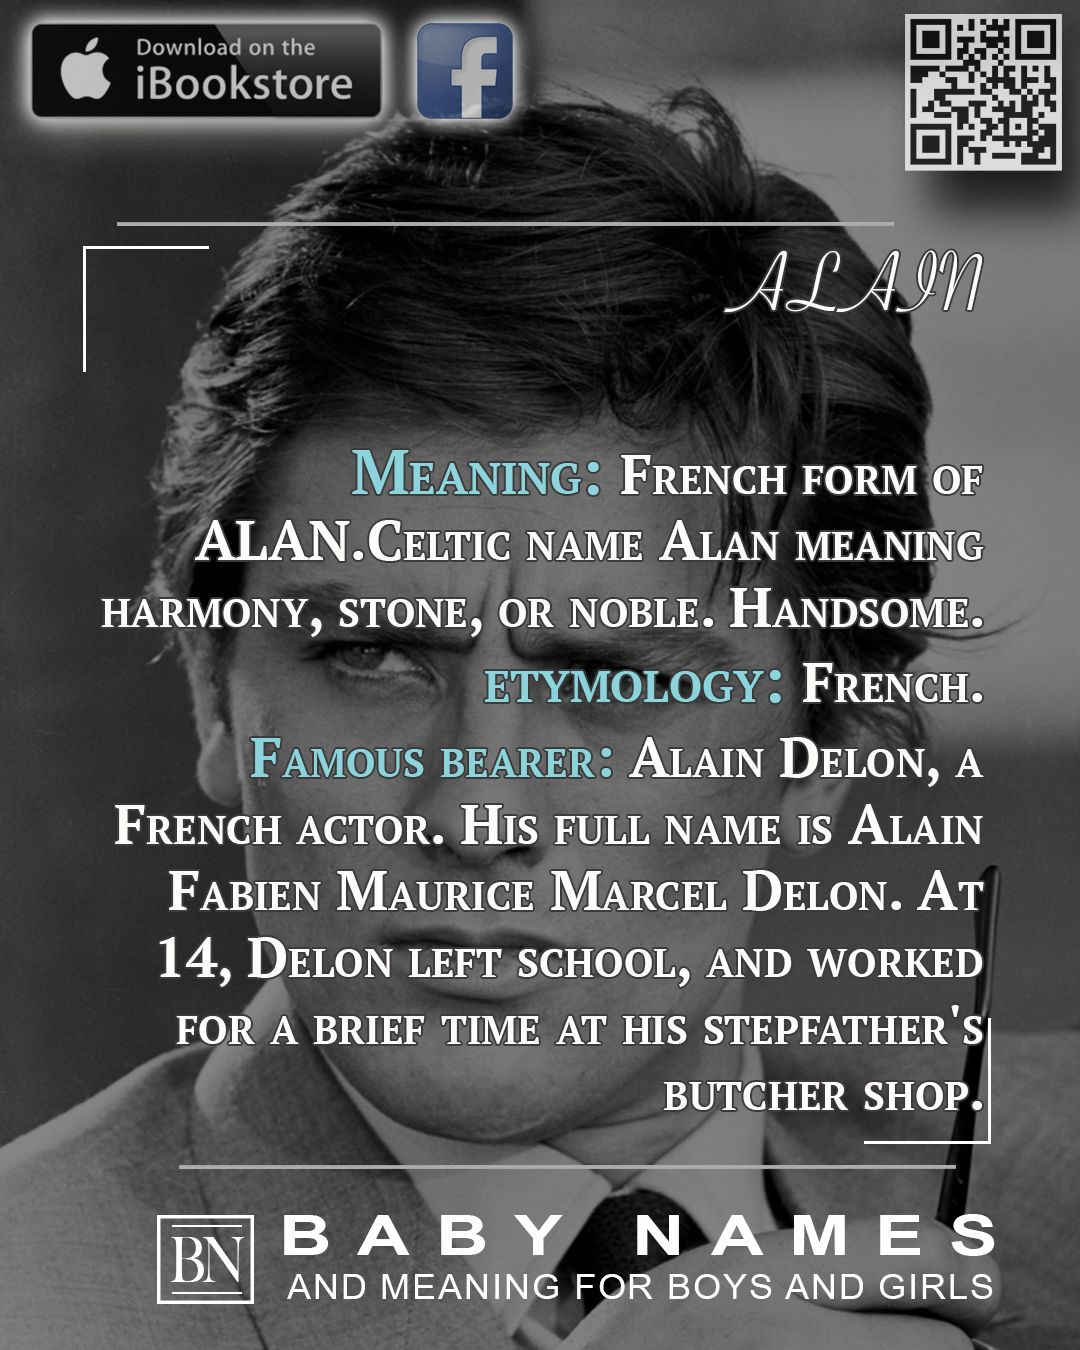 What is the name of Alain